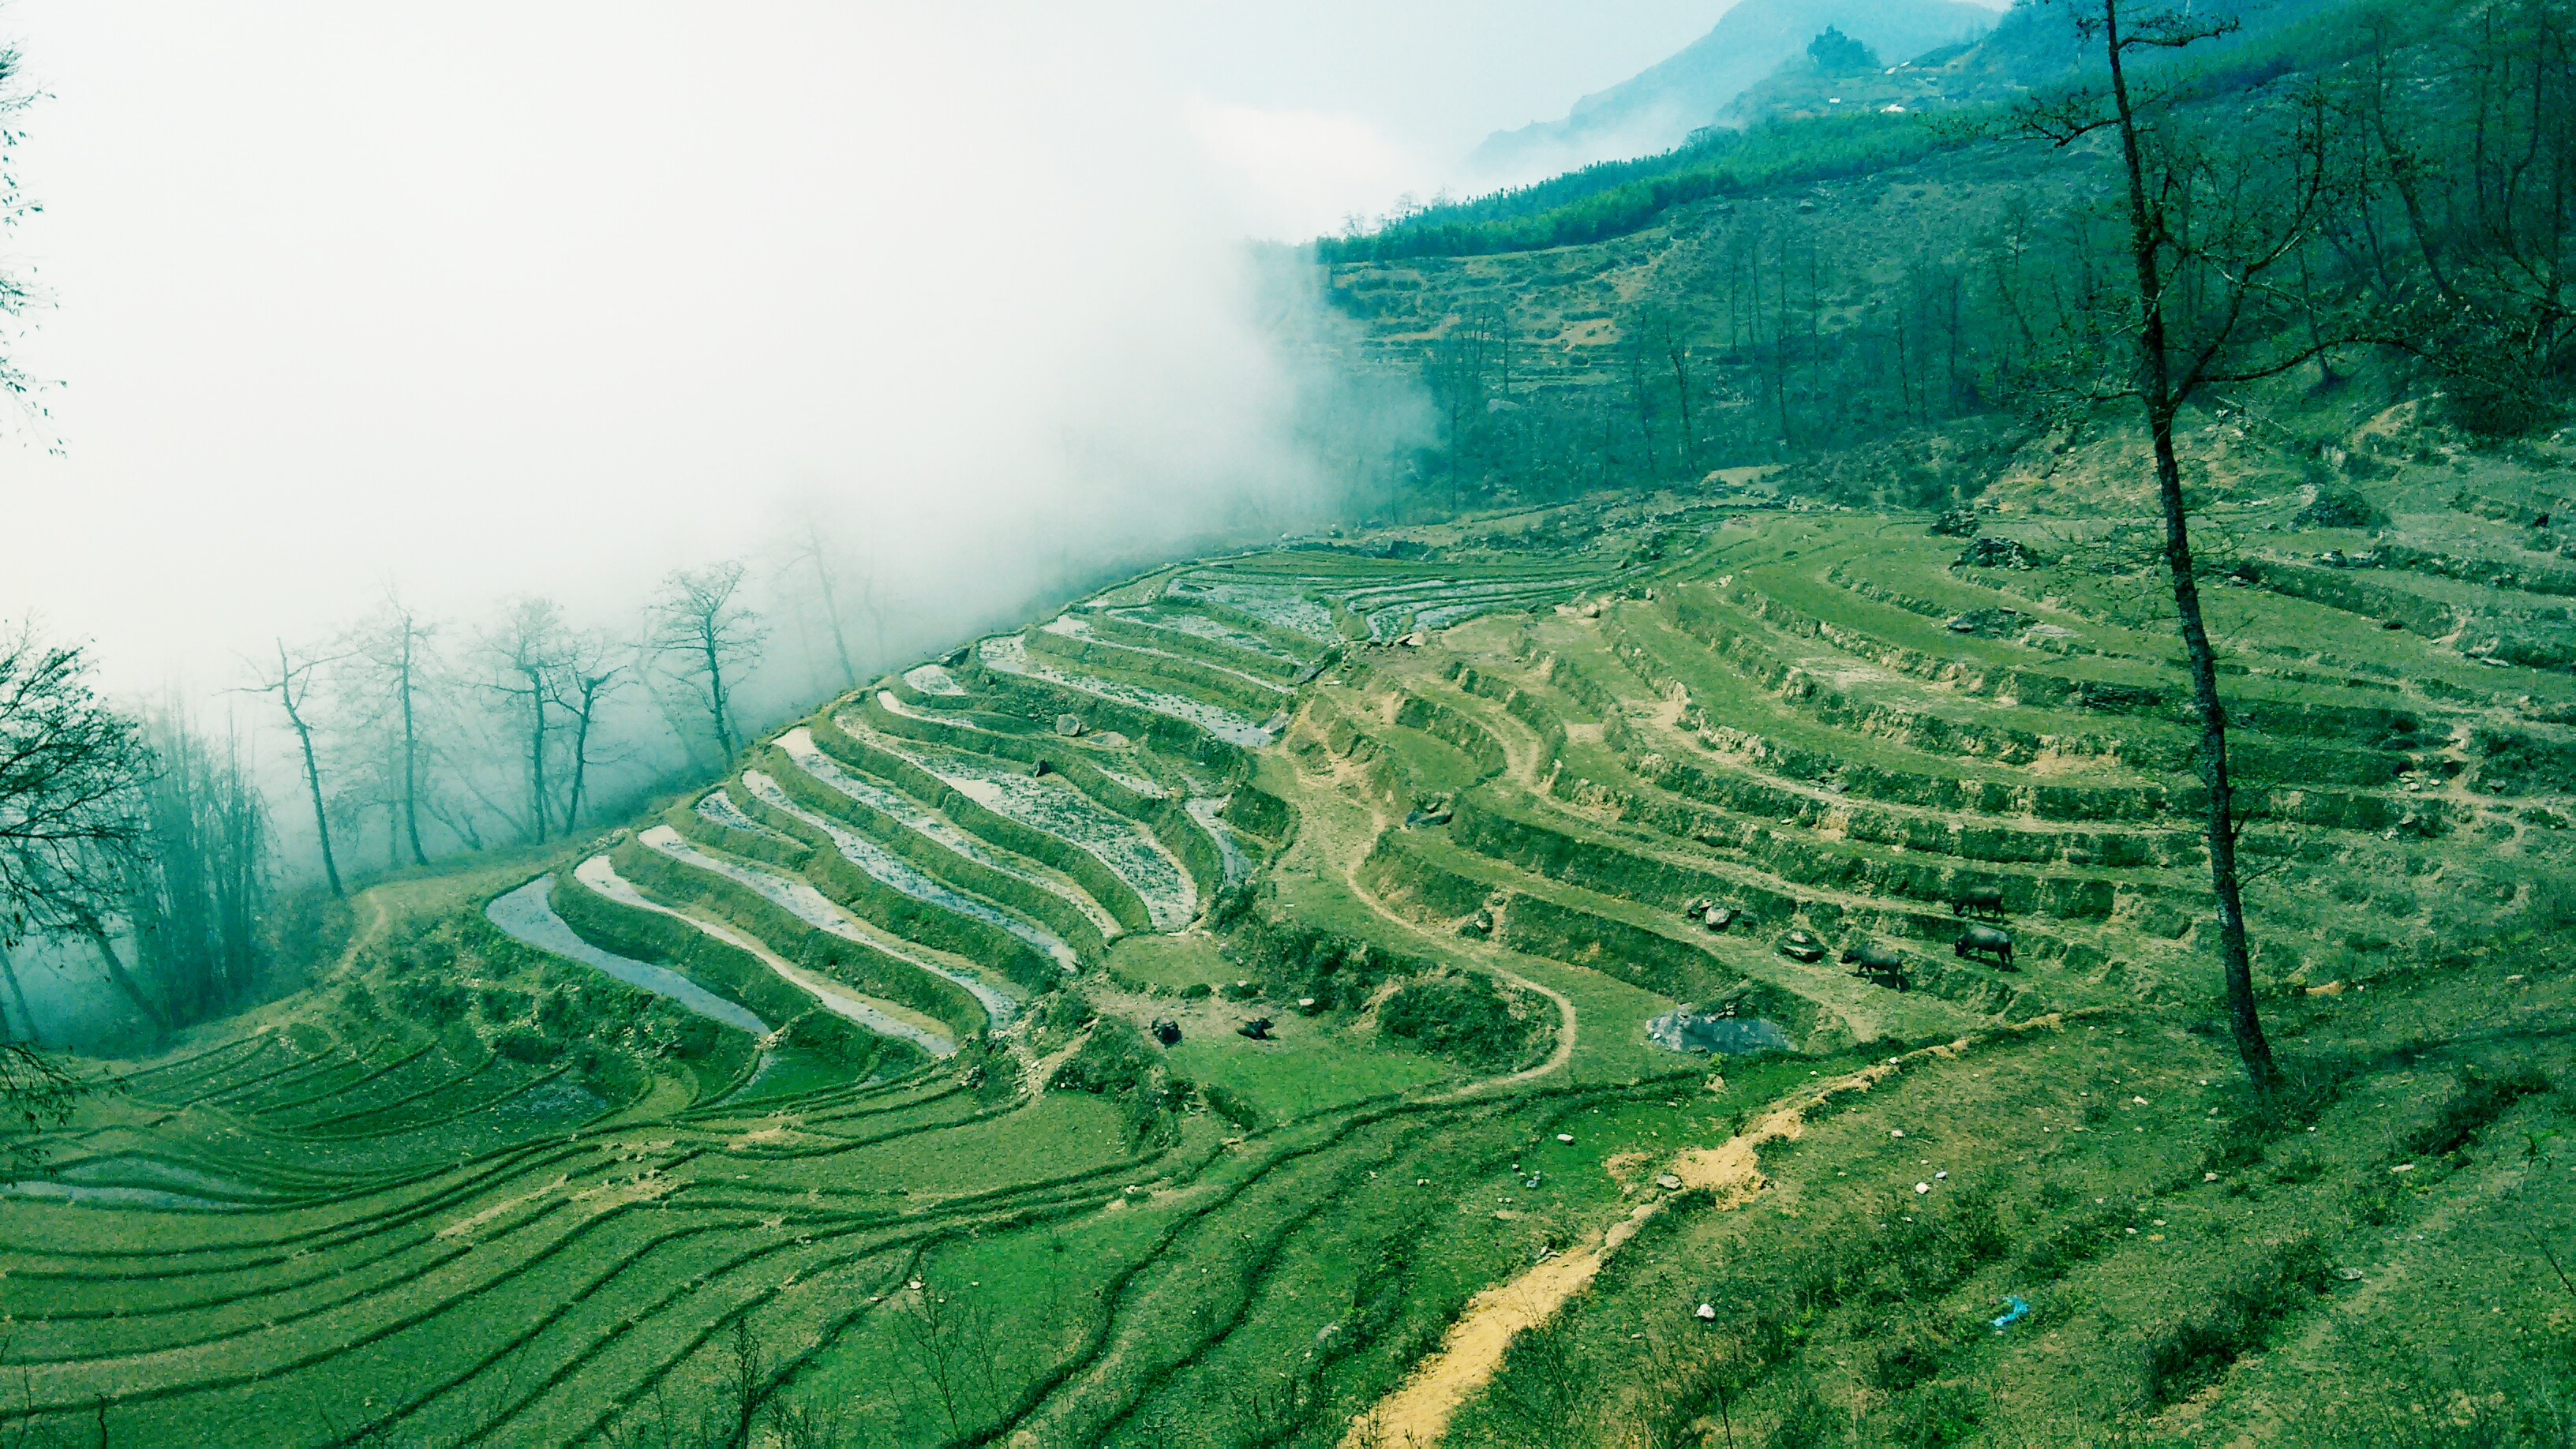 The Sa Pa Saga of the Rice Terraces - Trails and Frames